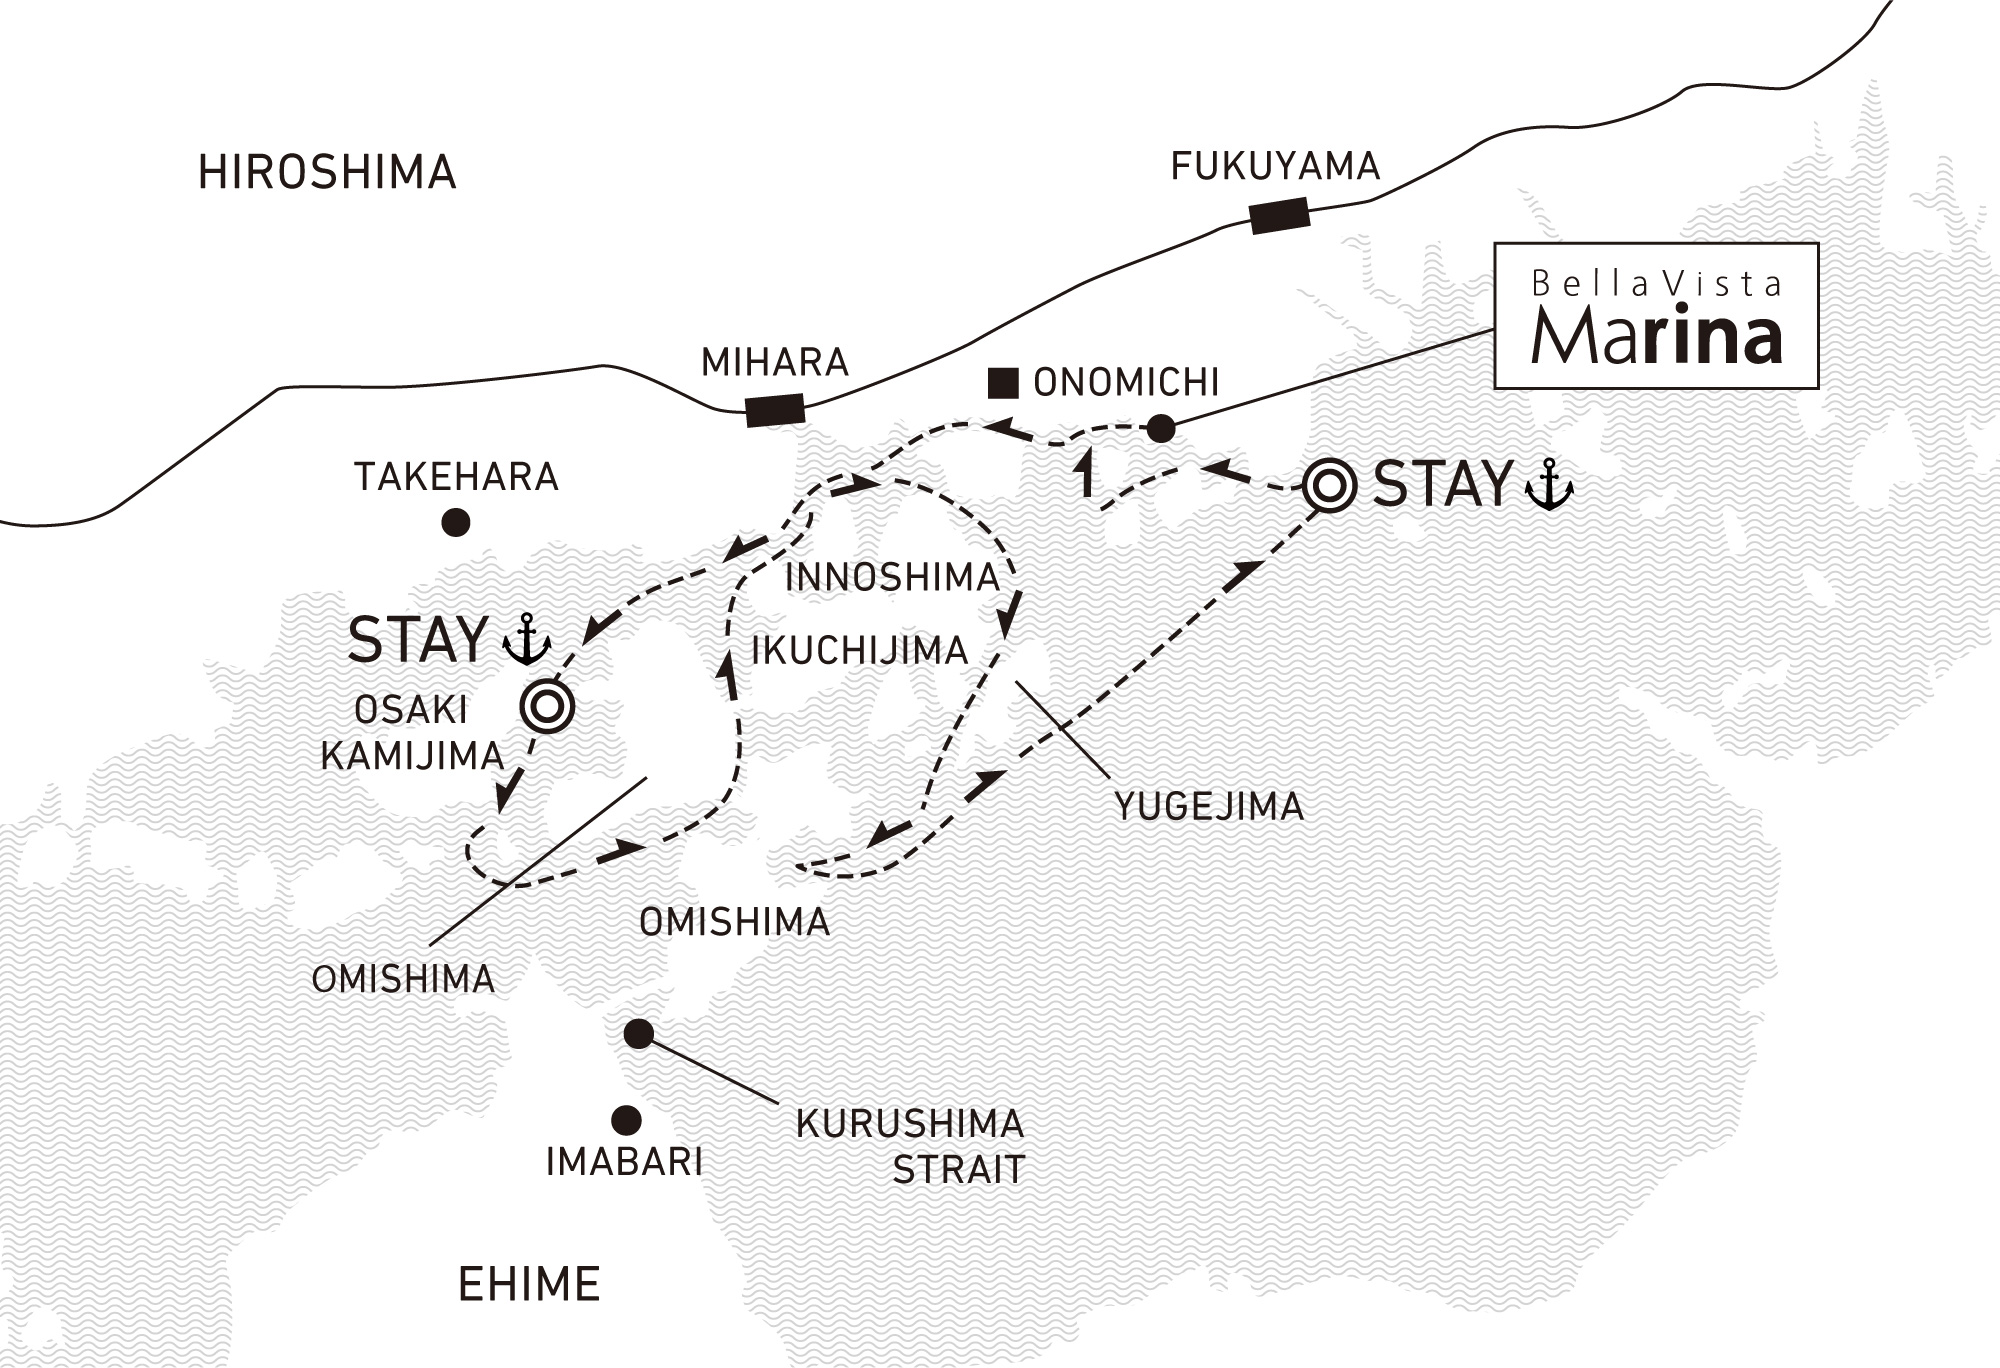 A three-day voyage to visit old pirates sites and navigate their routes 2 nights / anchor offshore at Omishima and Tomonoura